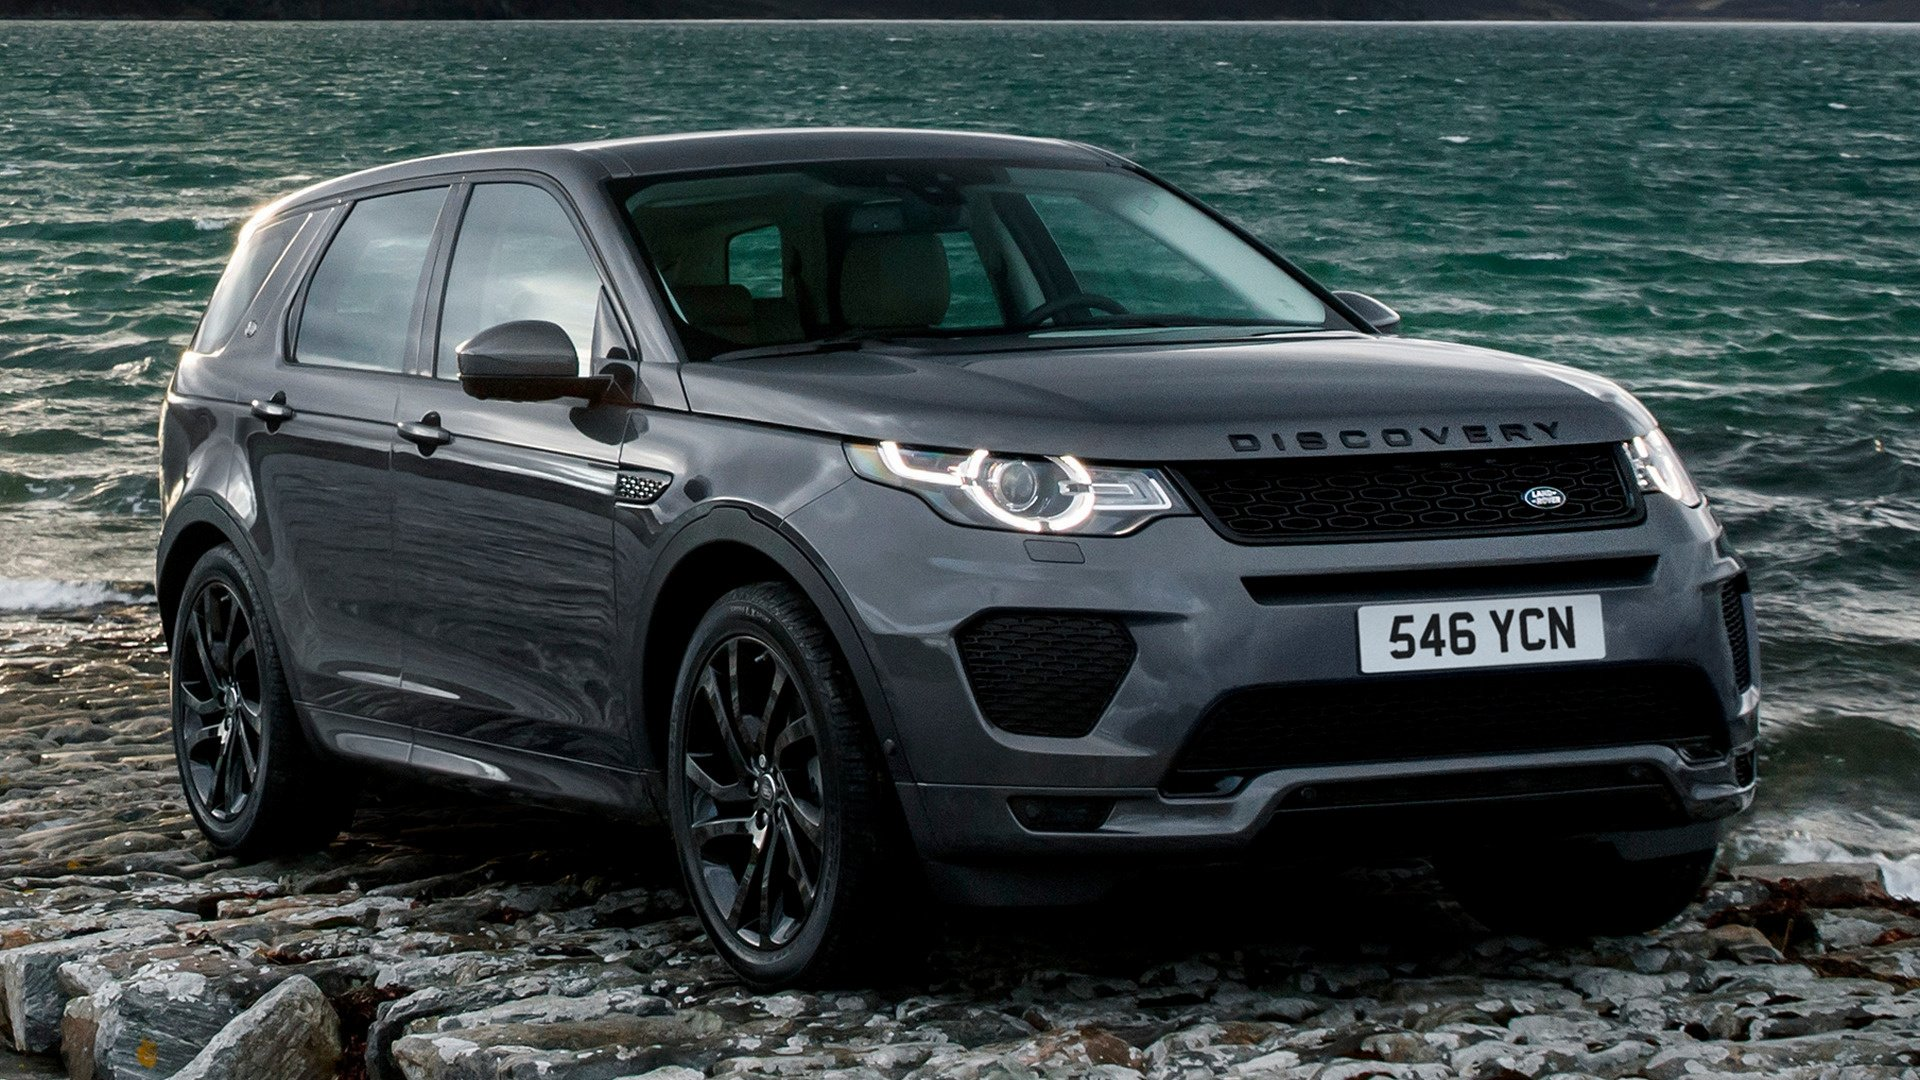 Wallpaper Land Rover Discovery Sport: 2017 Land Rover Discovery Sport Dynamic HD Wallpaper